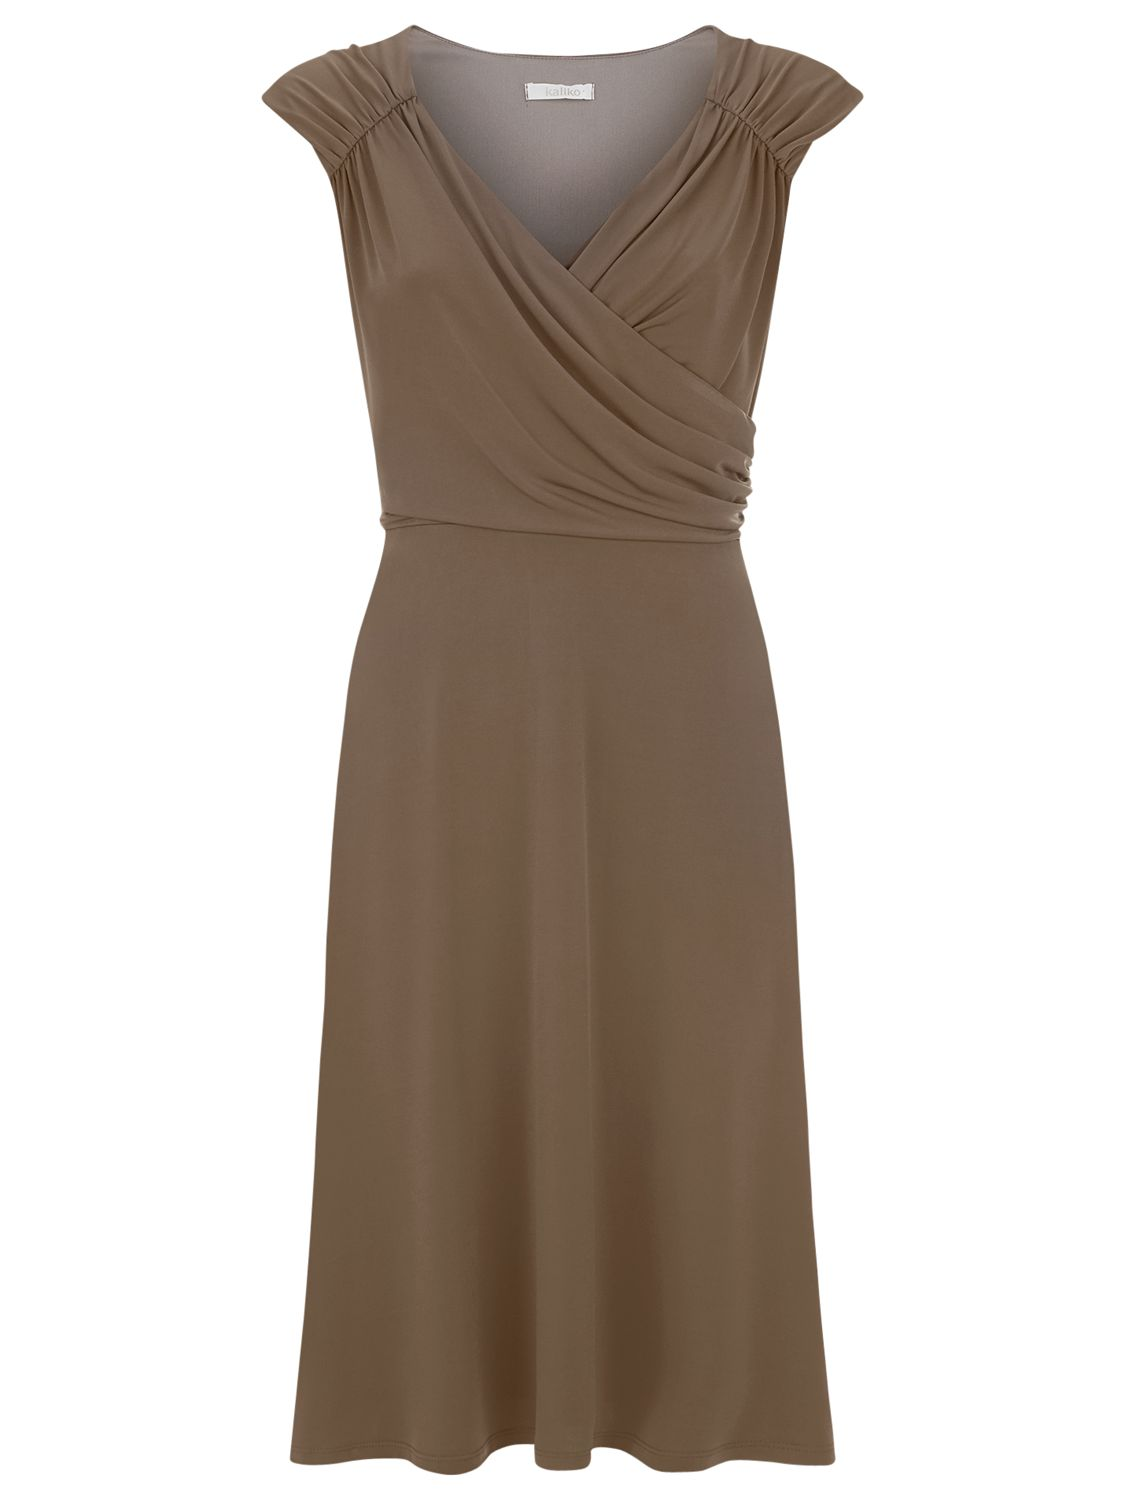 kaliko jersey soft prom dress, kaliko, jersey, soft, prom, dress, navy|navy|navy|navy|navy|taupe|taupe|taupe|taupe|navy|taupe, 12|14|16|10|18|14|10|18|16|8|8, clearance, womenswear offers, womens dresses offers, special offers, 20% off selected kaliko, new years party offers, women, plus size, inactive womenswear, new reductions, womens dresses, 1745174